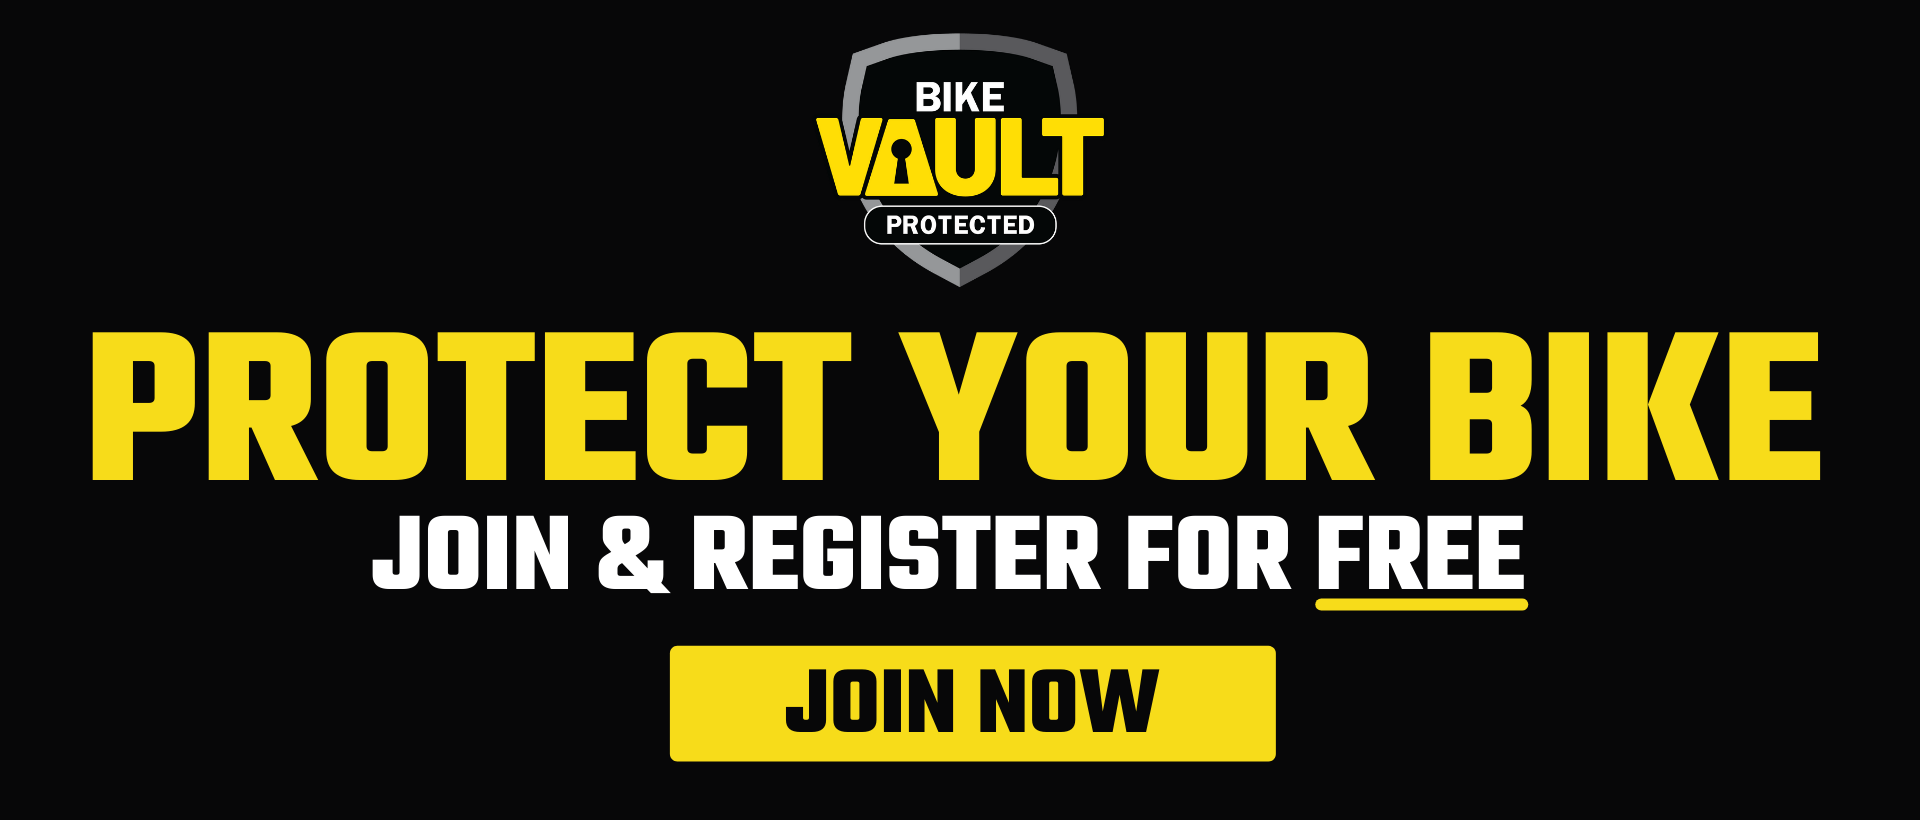 Protect Your Bike - Join and Register Your Bike for FREE with BikeVAULT